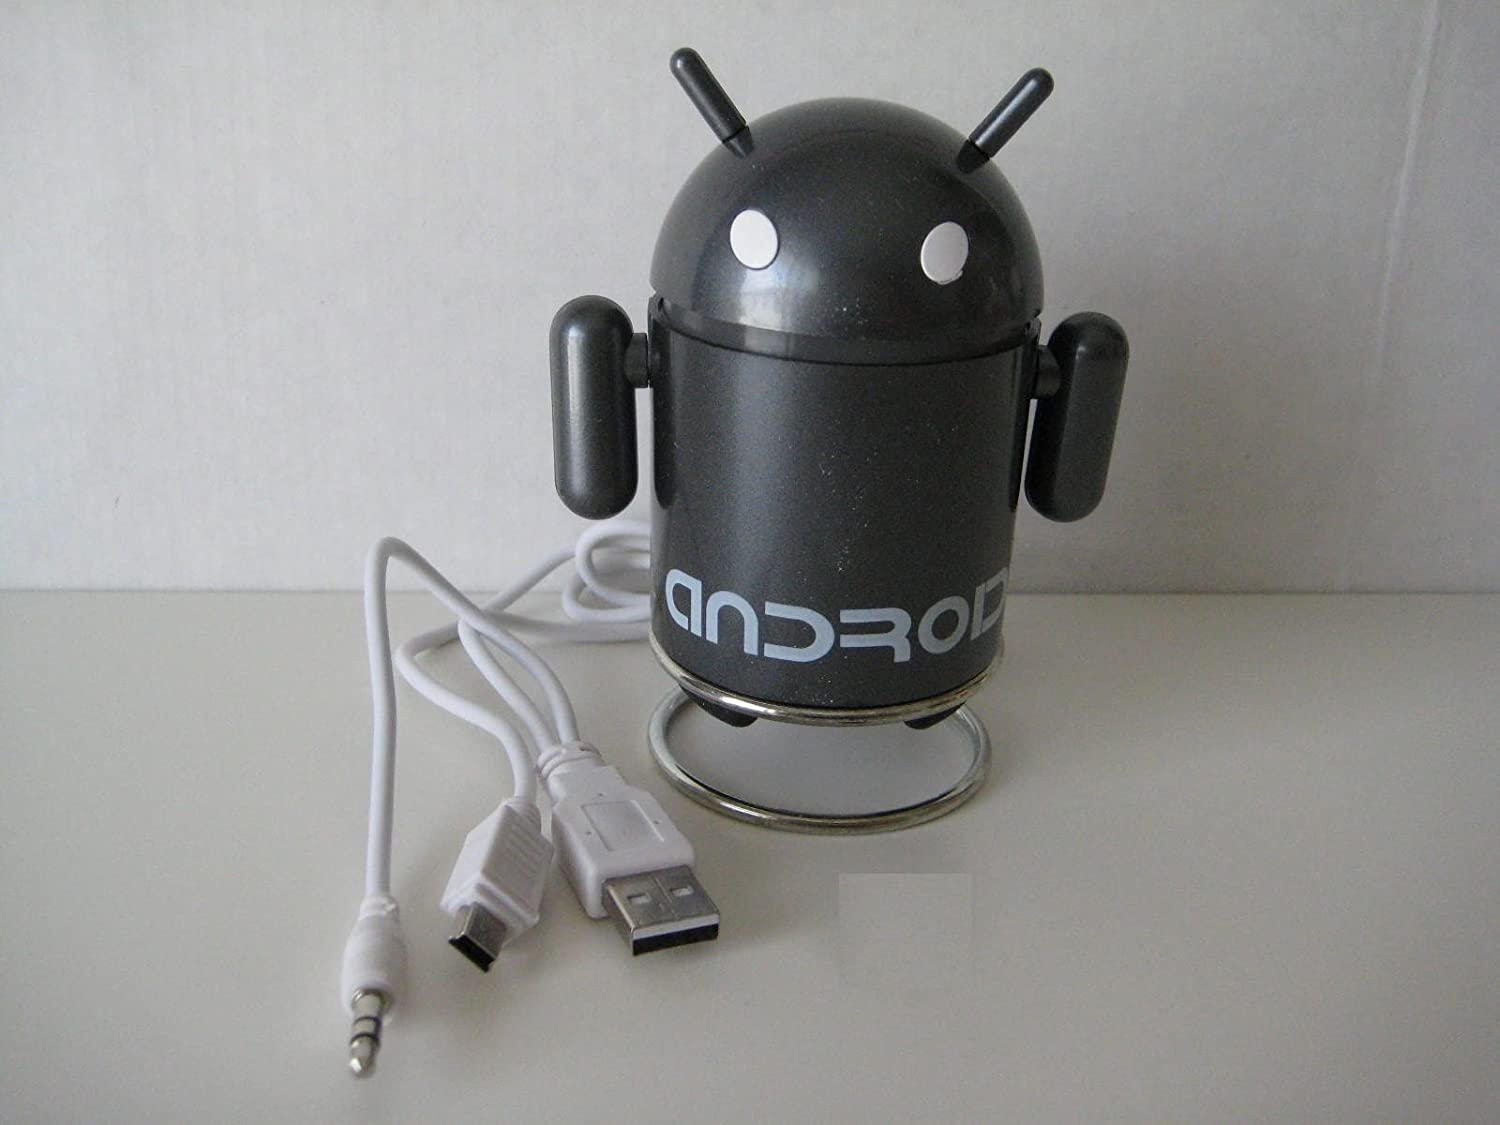 MAGNETIC GREY Android Robot Style USB Rechargeable FM//MP3 Player w// Stereo Speaker Micro SD /& TF Card input 3.5mm headphone; Color